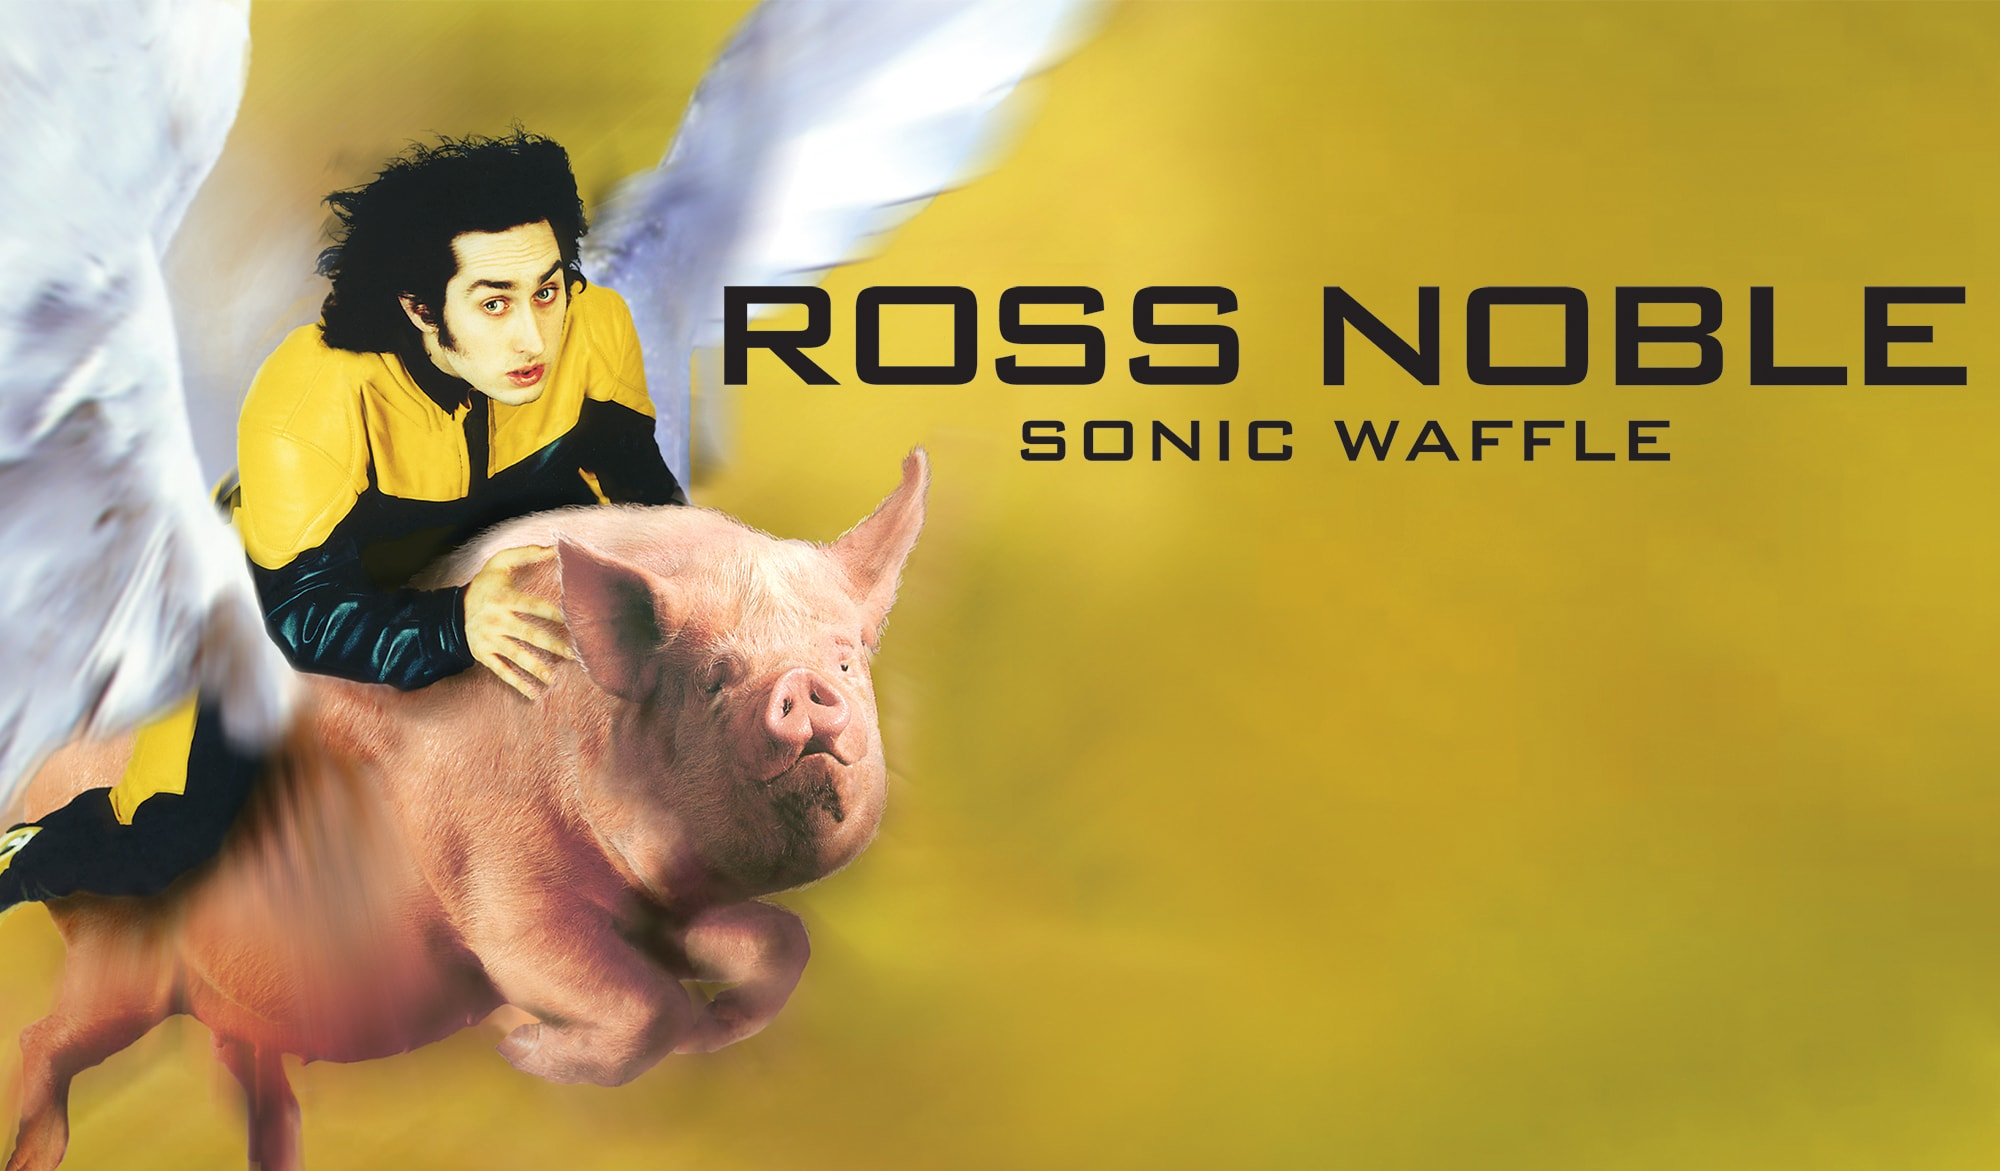 Ross Noble - Sonic Waffle DVD - show logo